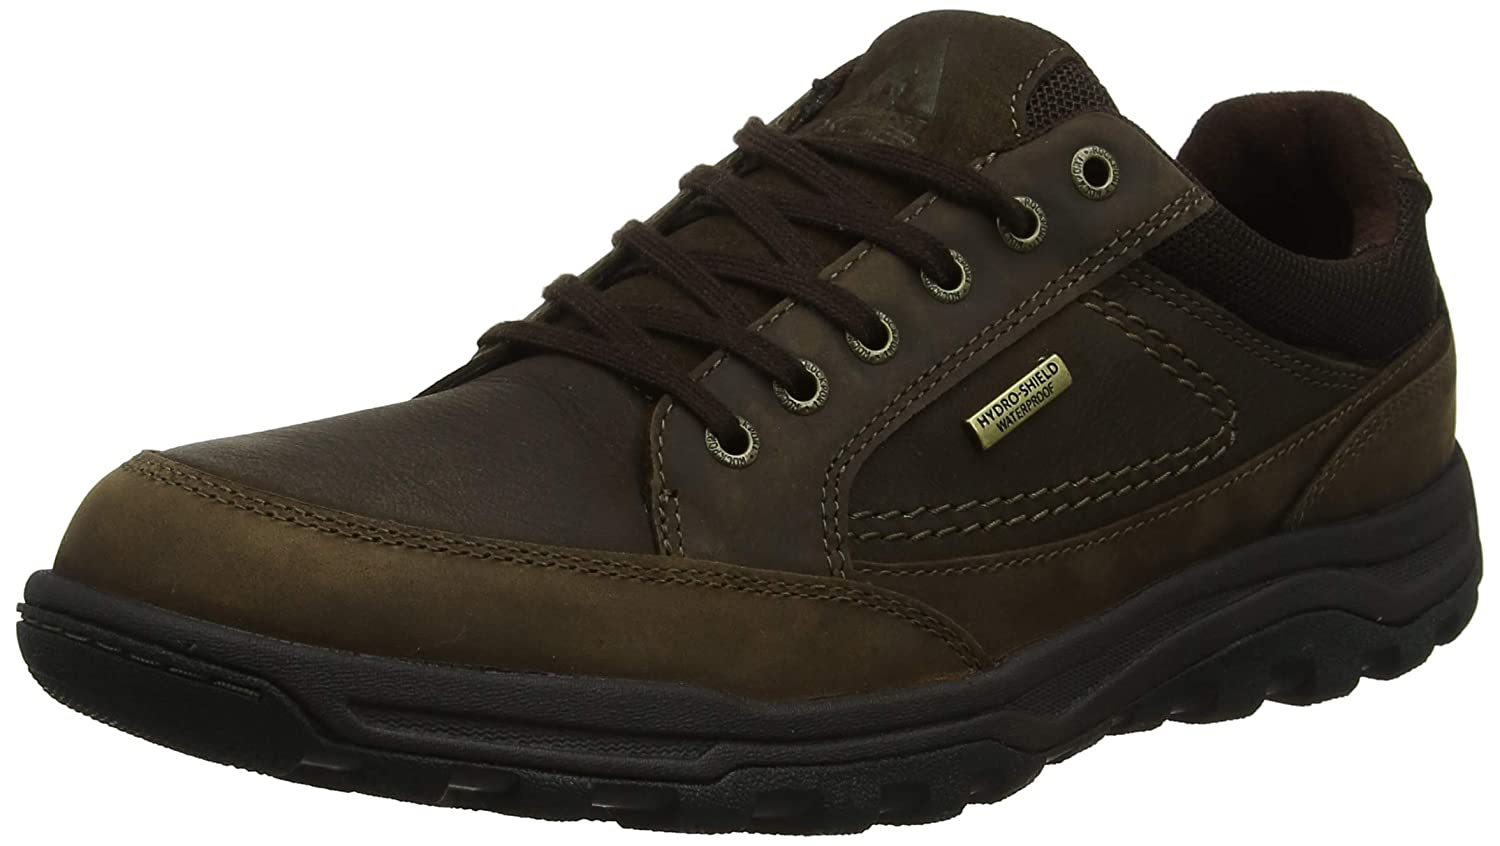 TALLA 43 EU. Rockport TT WP Oxford Dk Brown, Zapatos de Cordones Derby para Hombre